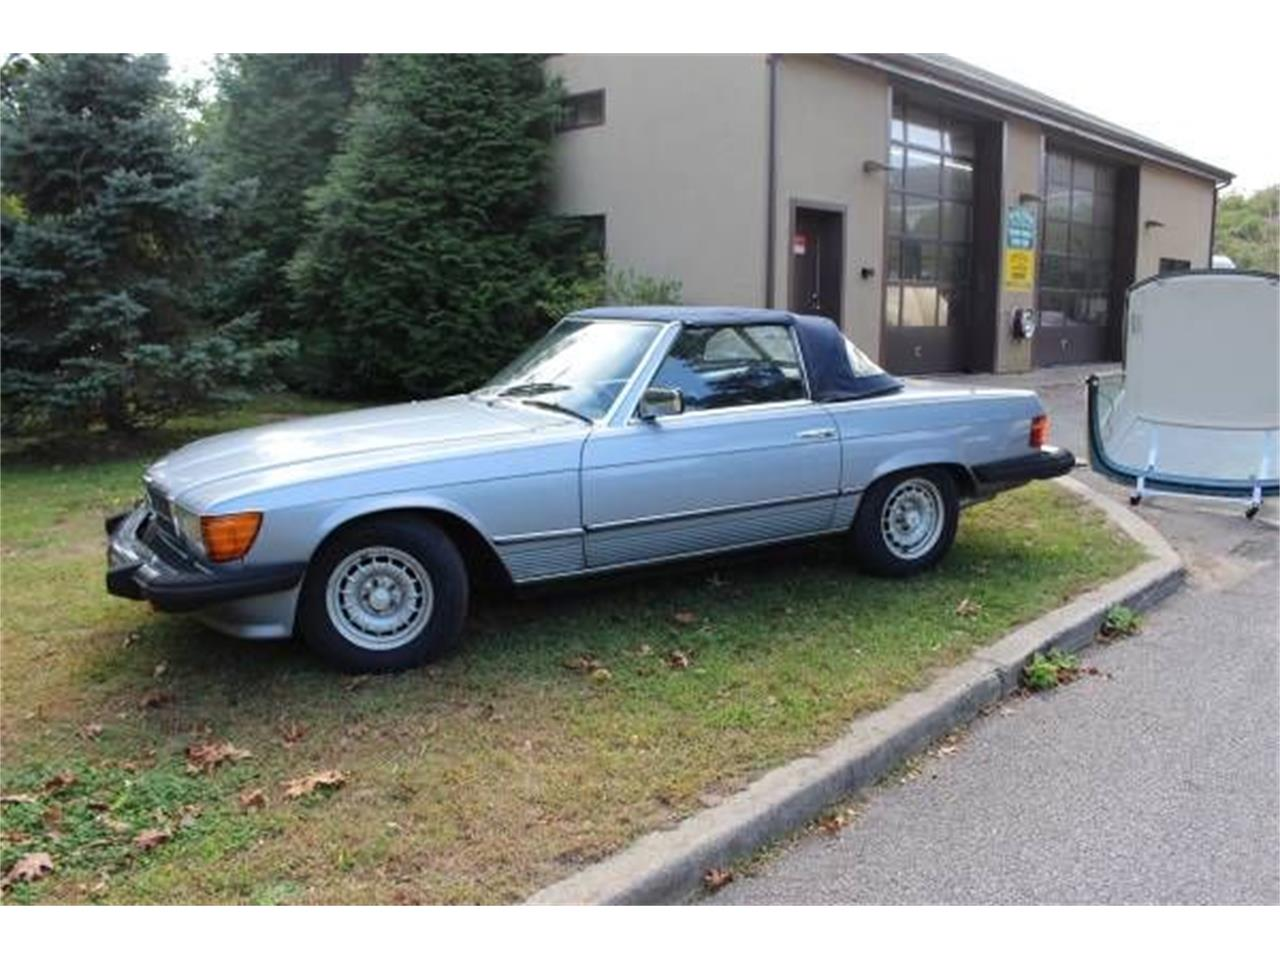 for sale 1981 mercedes-benz 380sl in cadillac, michigan cars - cadillac, mi at geebo